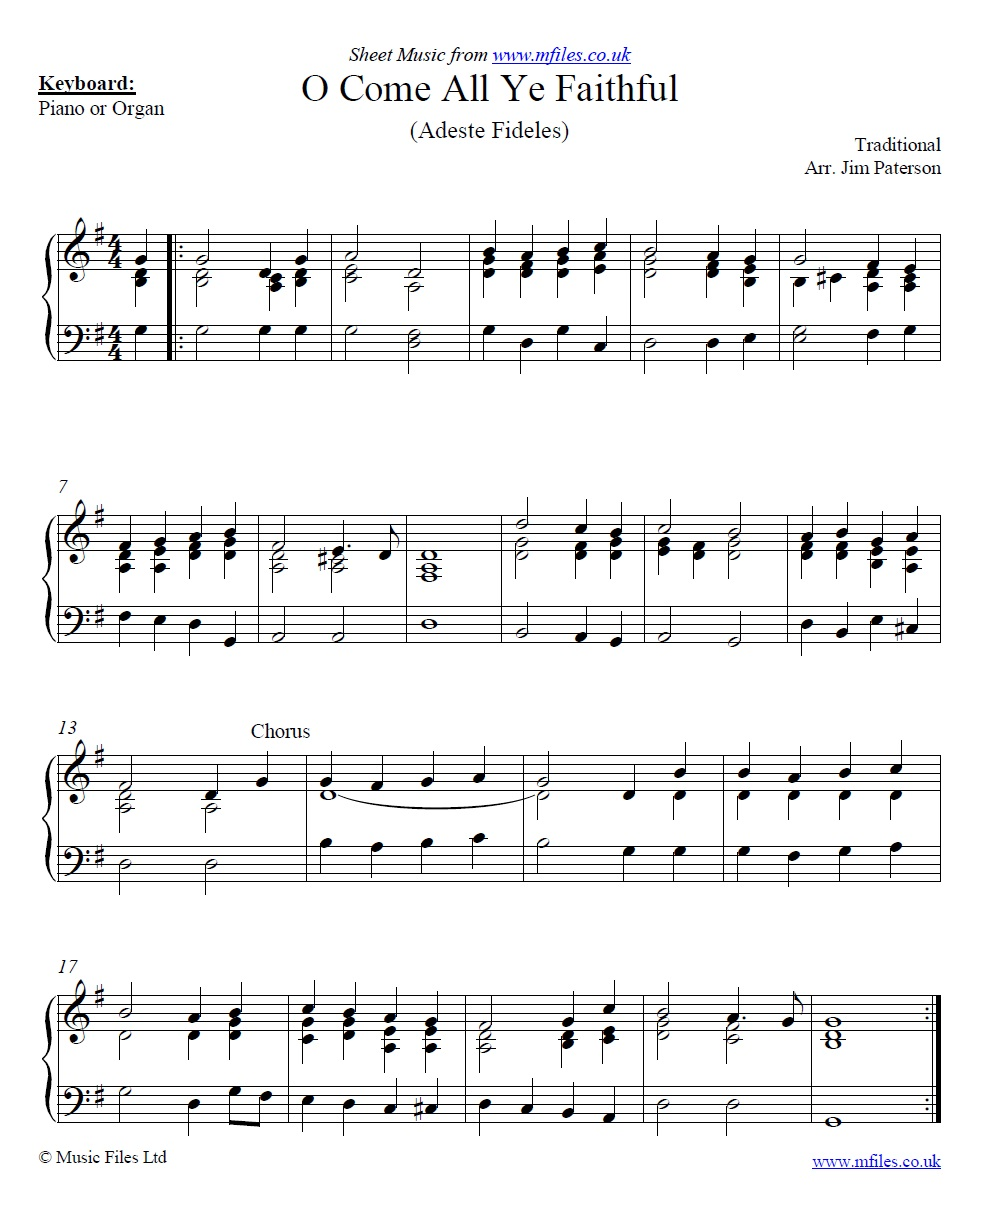 O Come All Ye Faithful for piano - sheet music 1st page